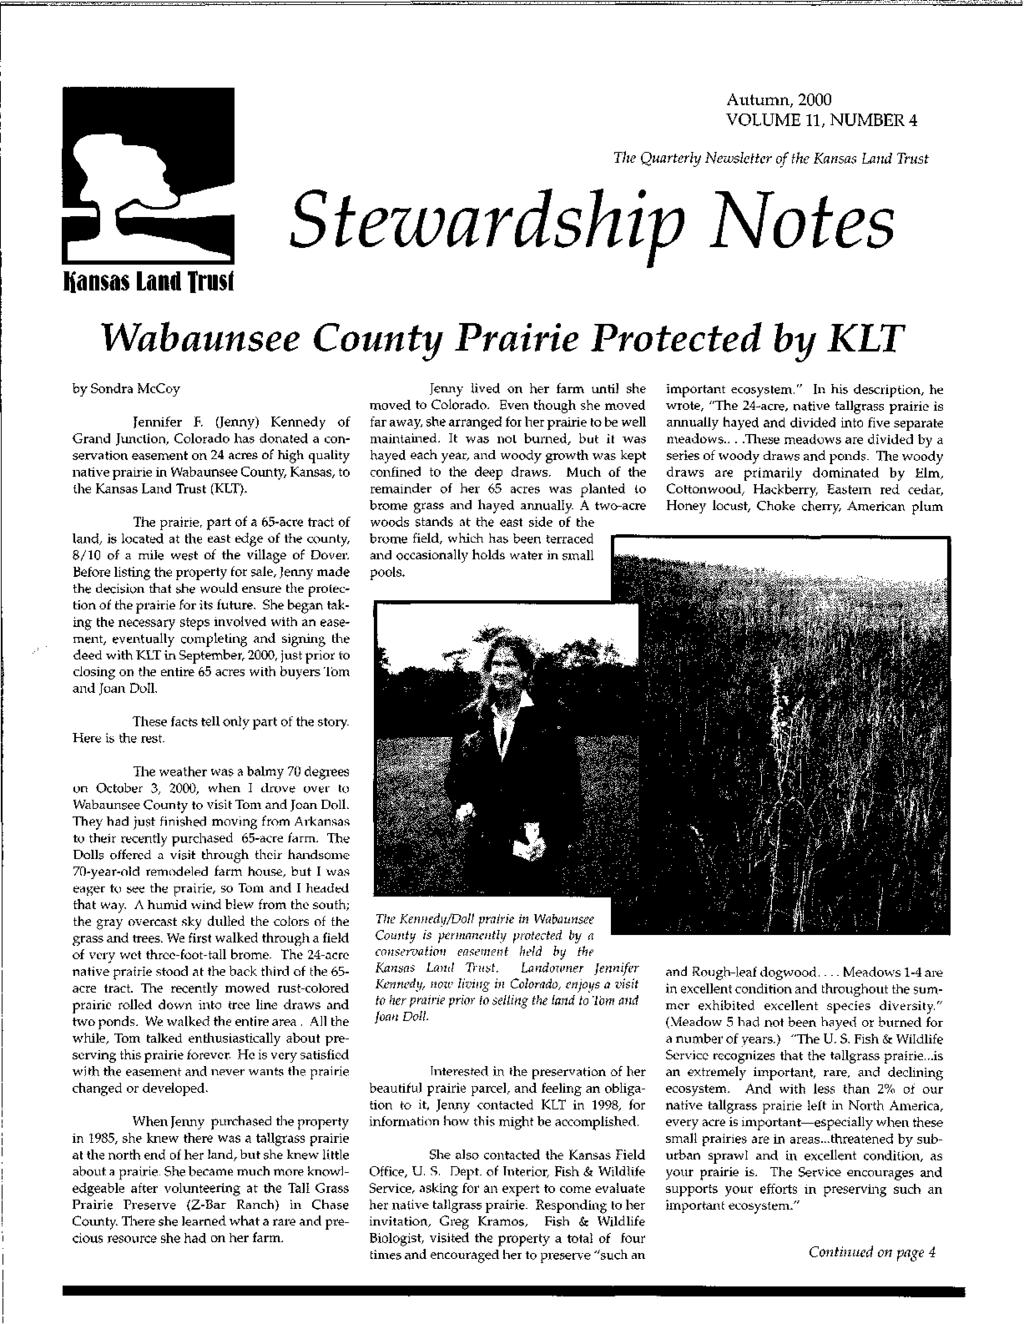 Hansas land Irlls' Stewardship Autumn, 2000 VOLUME 11, NUMBER 4 The Quarterly Newsletter of the Kansas Land Trust otes Wabaunsee County Prairie Protected by KLT by Sondra McCoy Jennifer F.